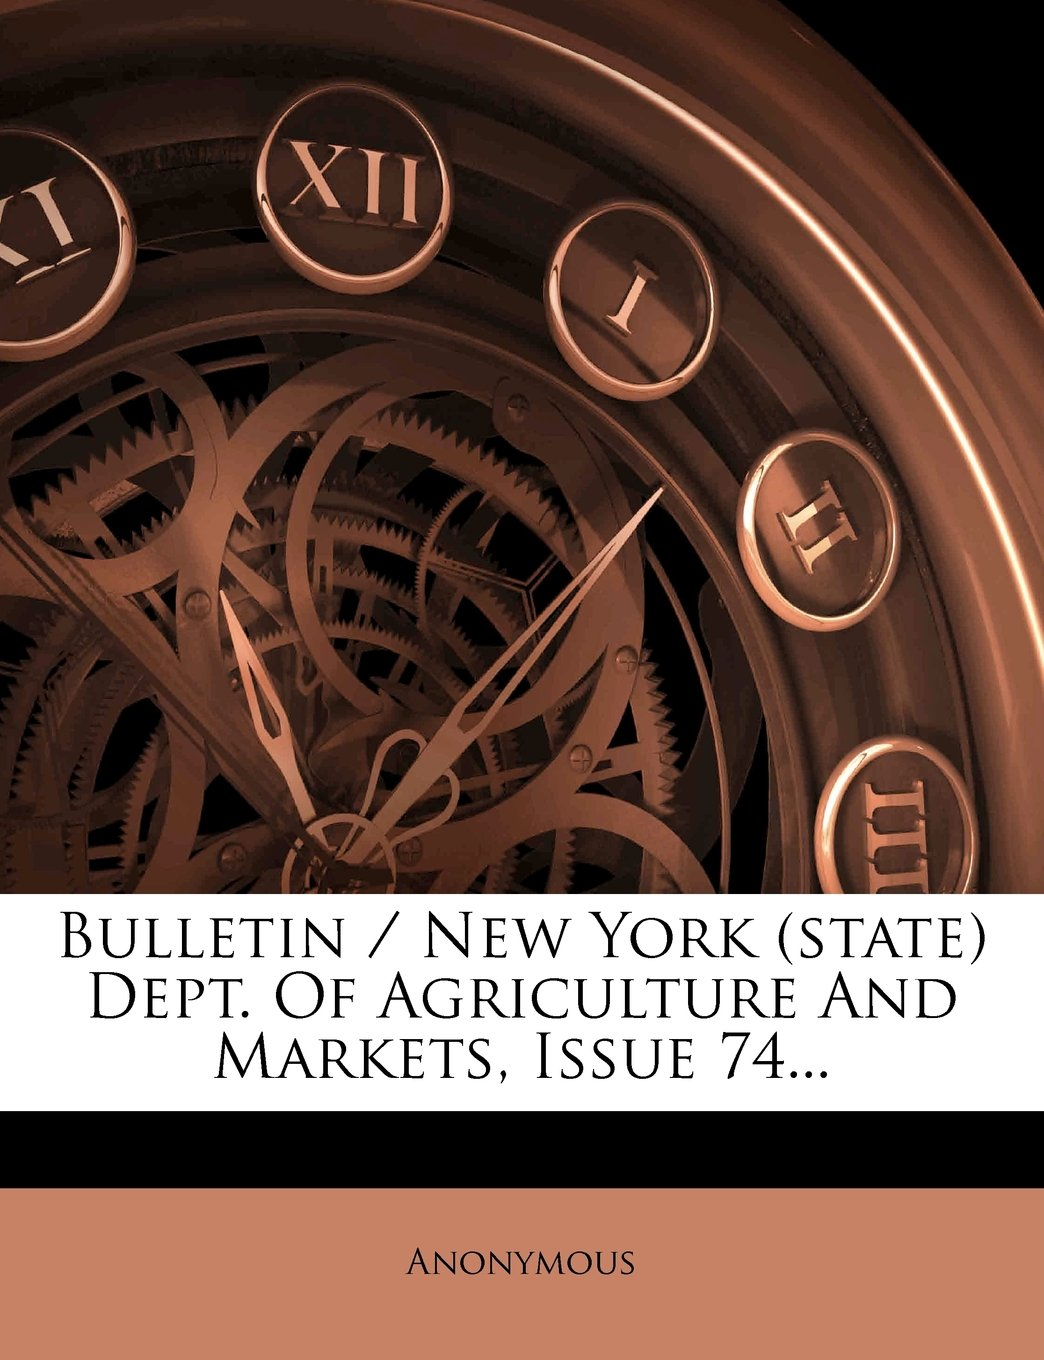 Download Bulletin / New York (state) Dept. Of Agriculture And Markets, Issue 74... ebook